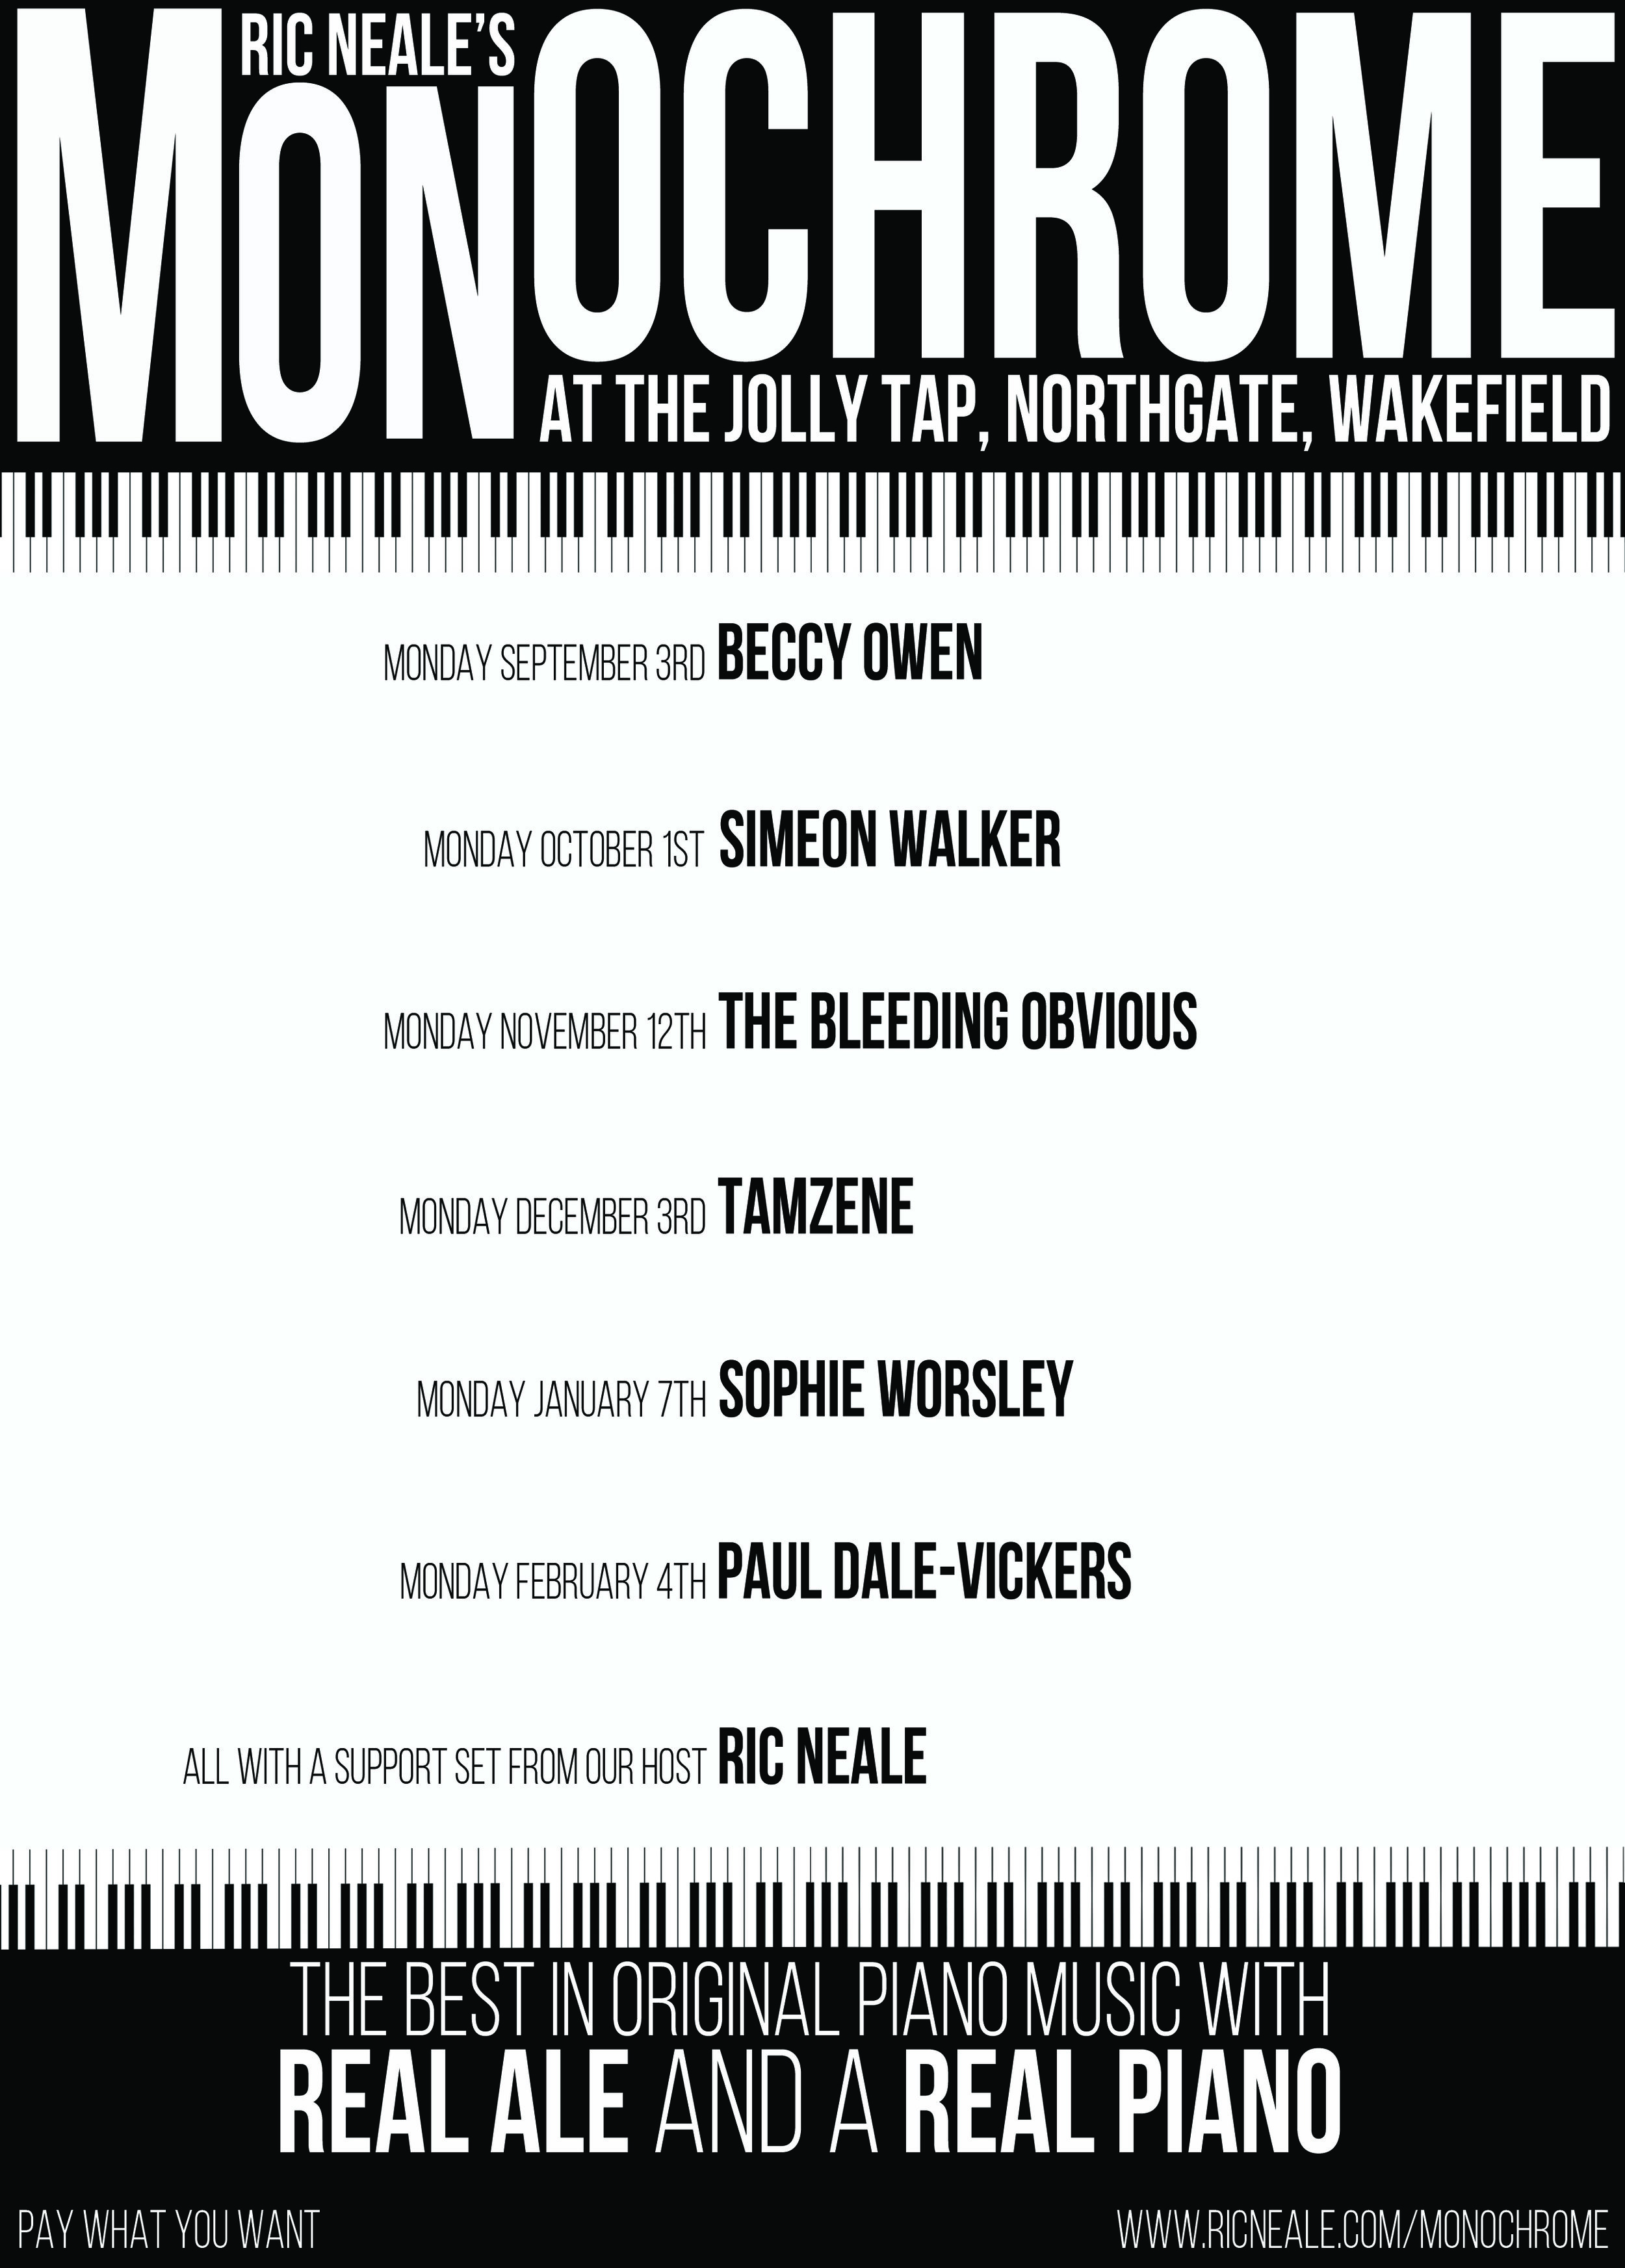 MONOCHROME - Monochrome is a monthly piano night curated by musician Ric Neale at The Jolly Tap in Wakefield.At each show Ric will do a support slot and then a featured artist will do a set on the piano in the bar. They show starts at 8pm and it's Pay What You Want. See below for details on all the amazing artists.